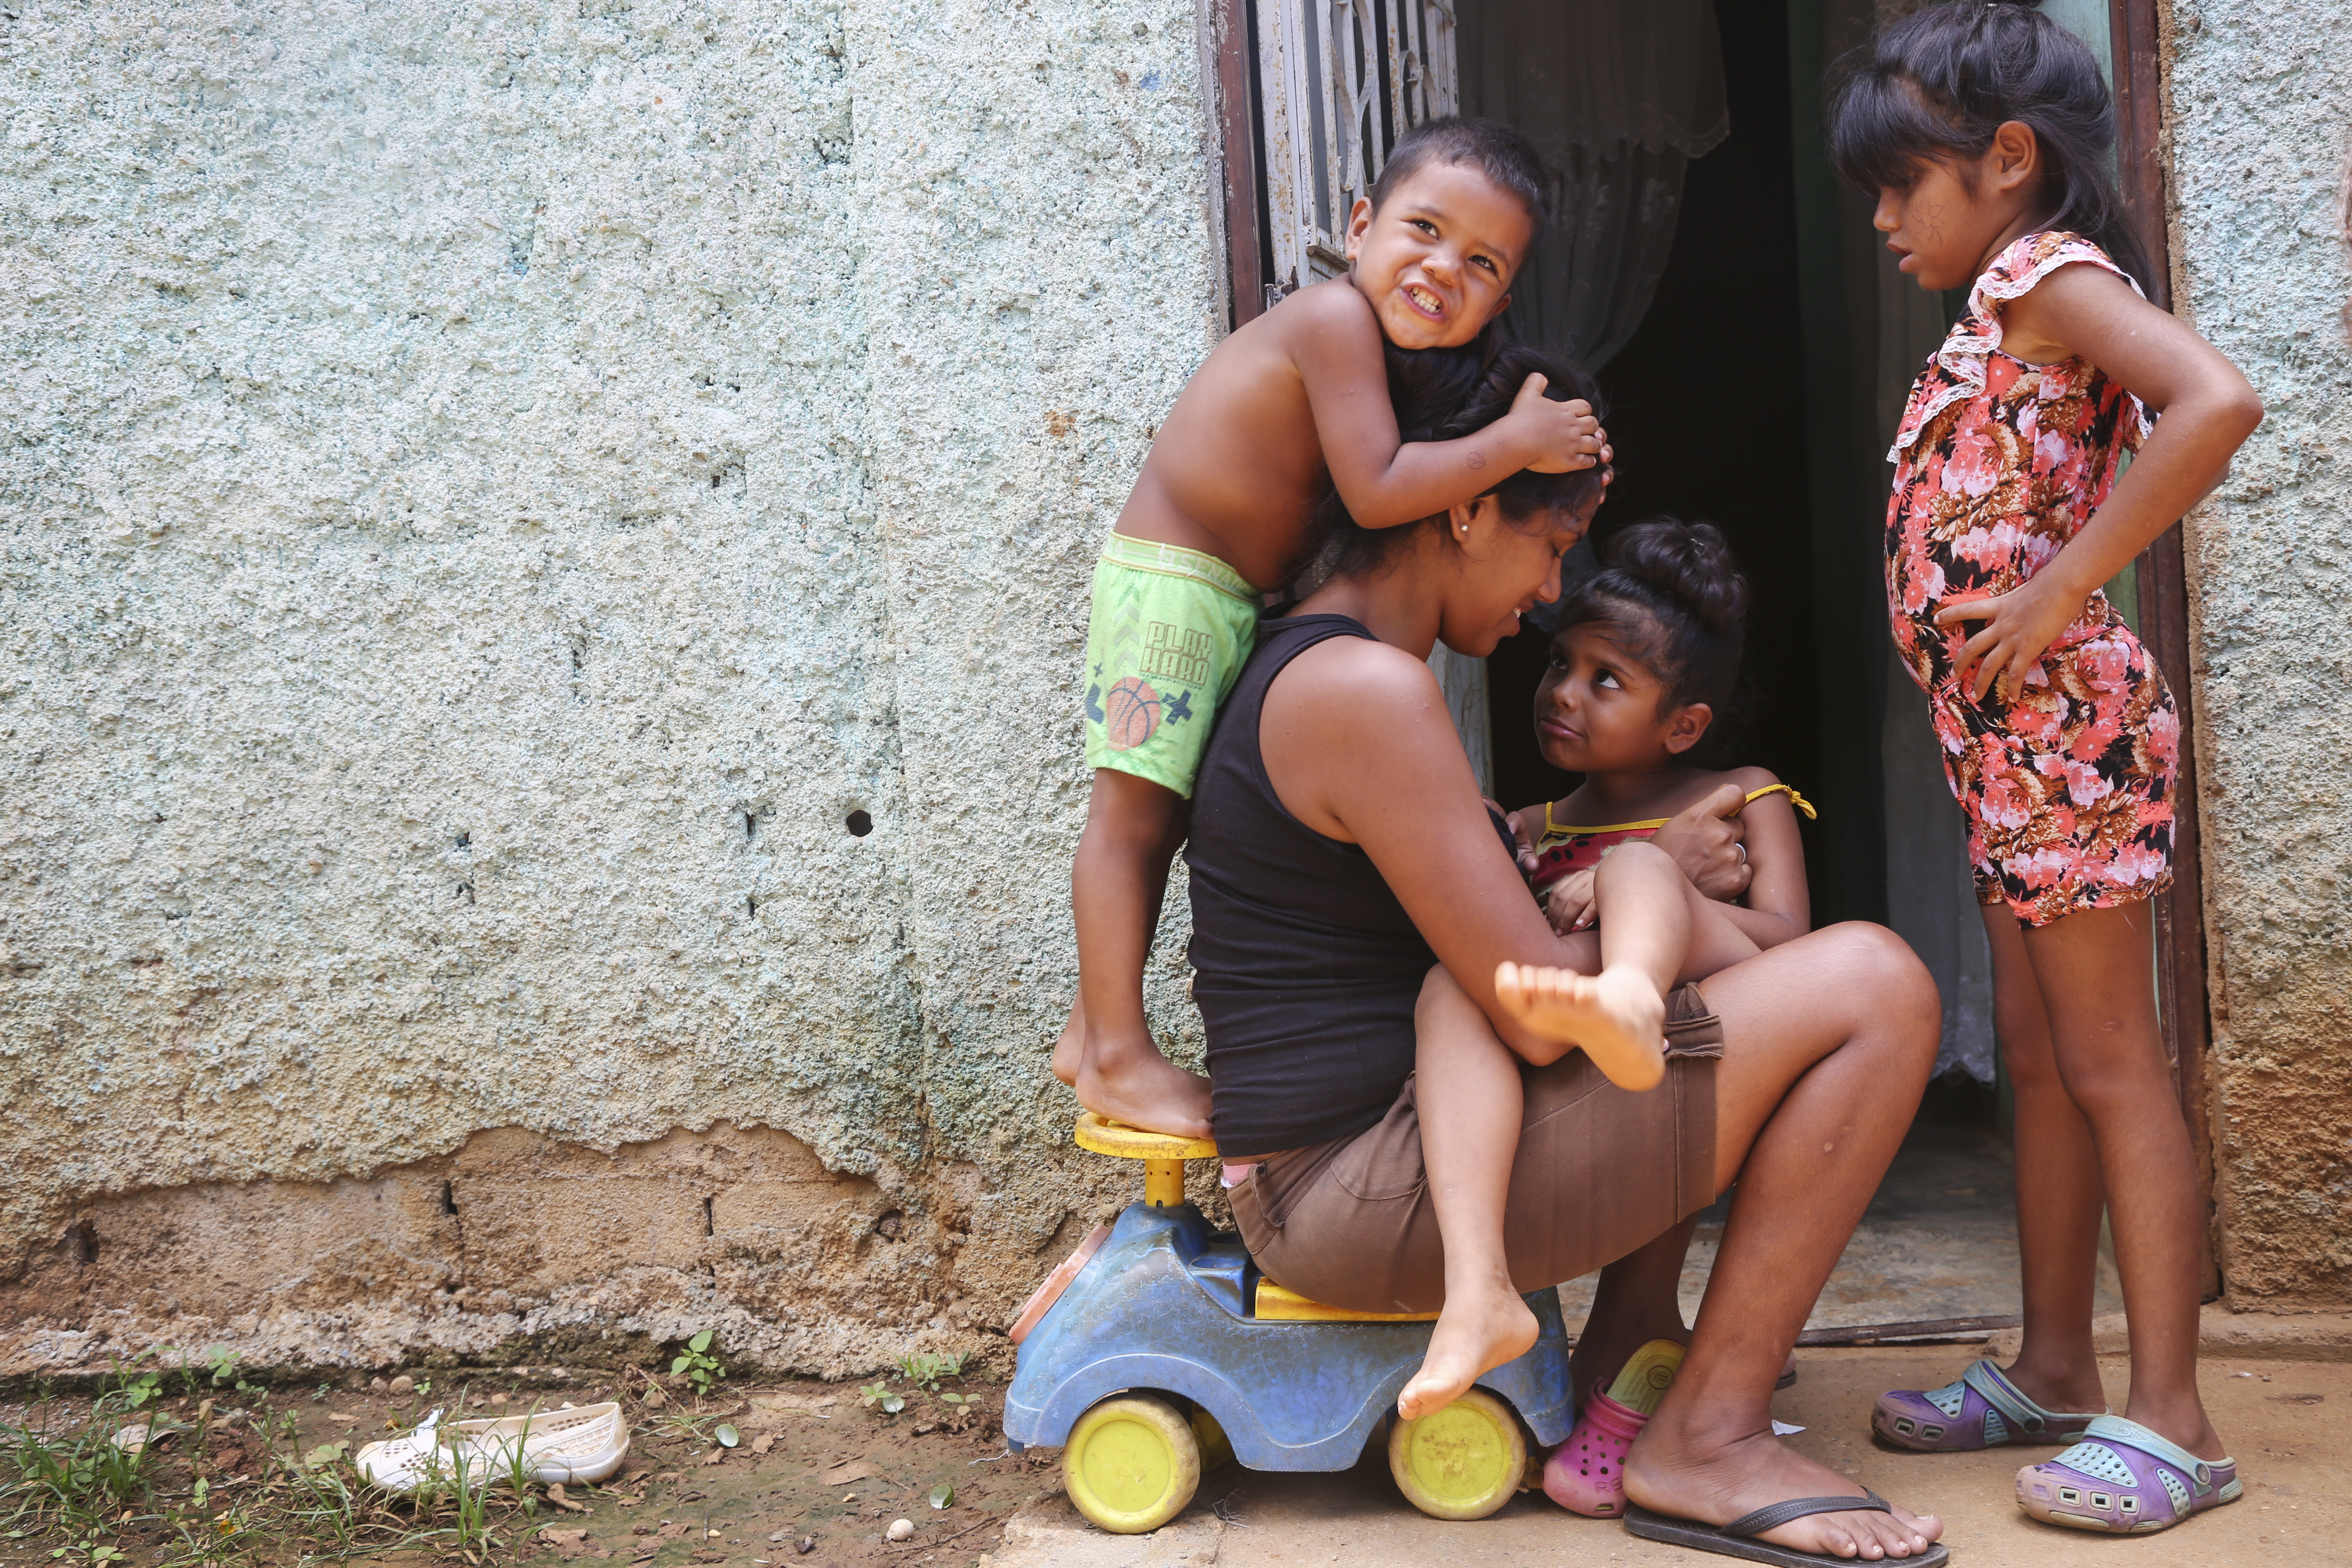 Yusmarelis Acuña, 29, snuggles with her daughter, Grendimar, 6, while her son Greivis, 3, climbs on her and eldest daughter, Valentina,7, chats with her outside their home in Tomuso, Venezuela.